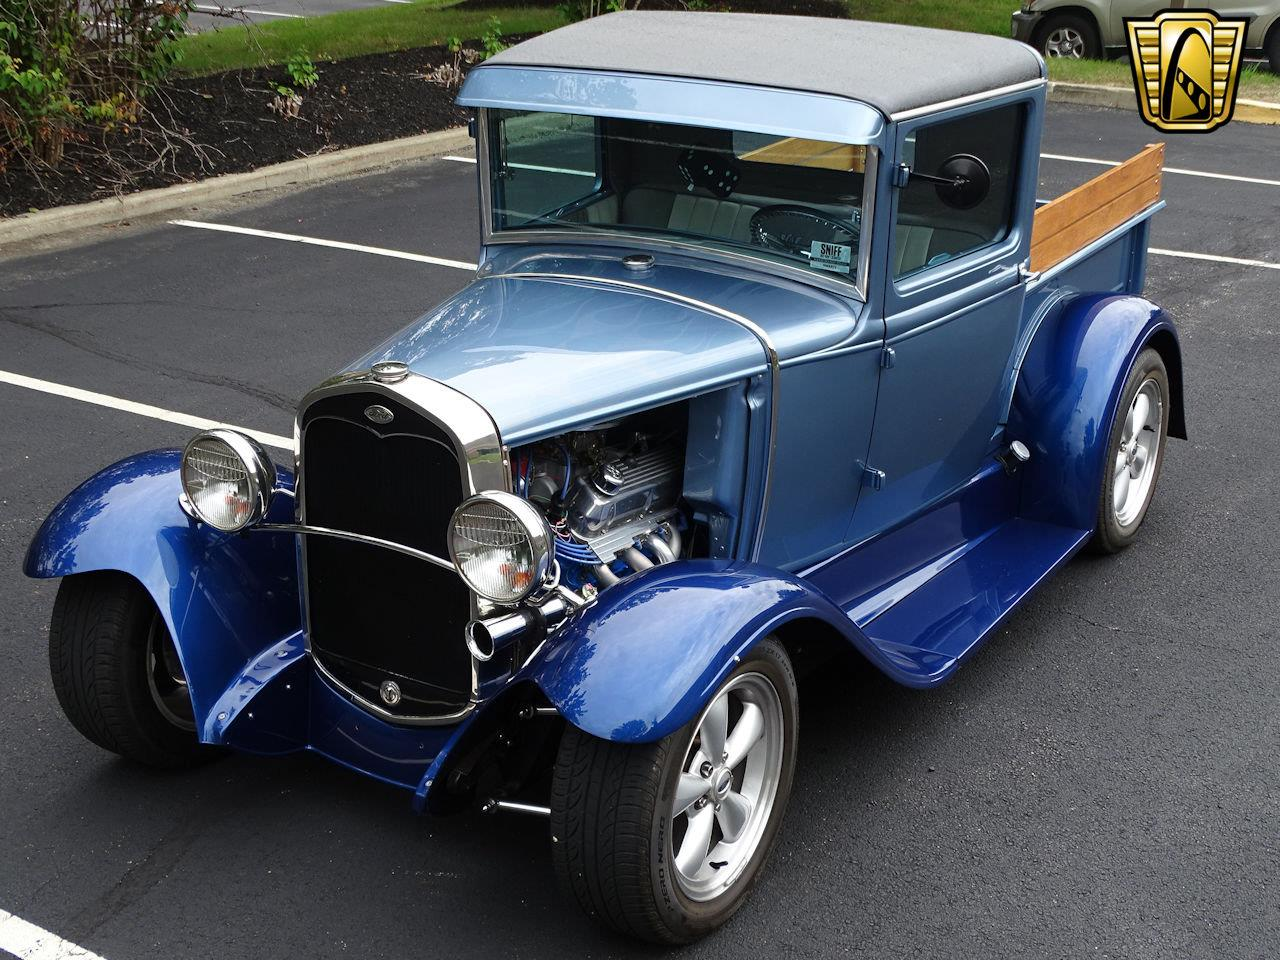 Large Picture of '31 Ford Model A located in West Deptford New Jersey - $54,000.00 - LNTS